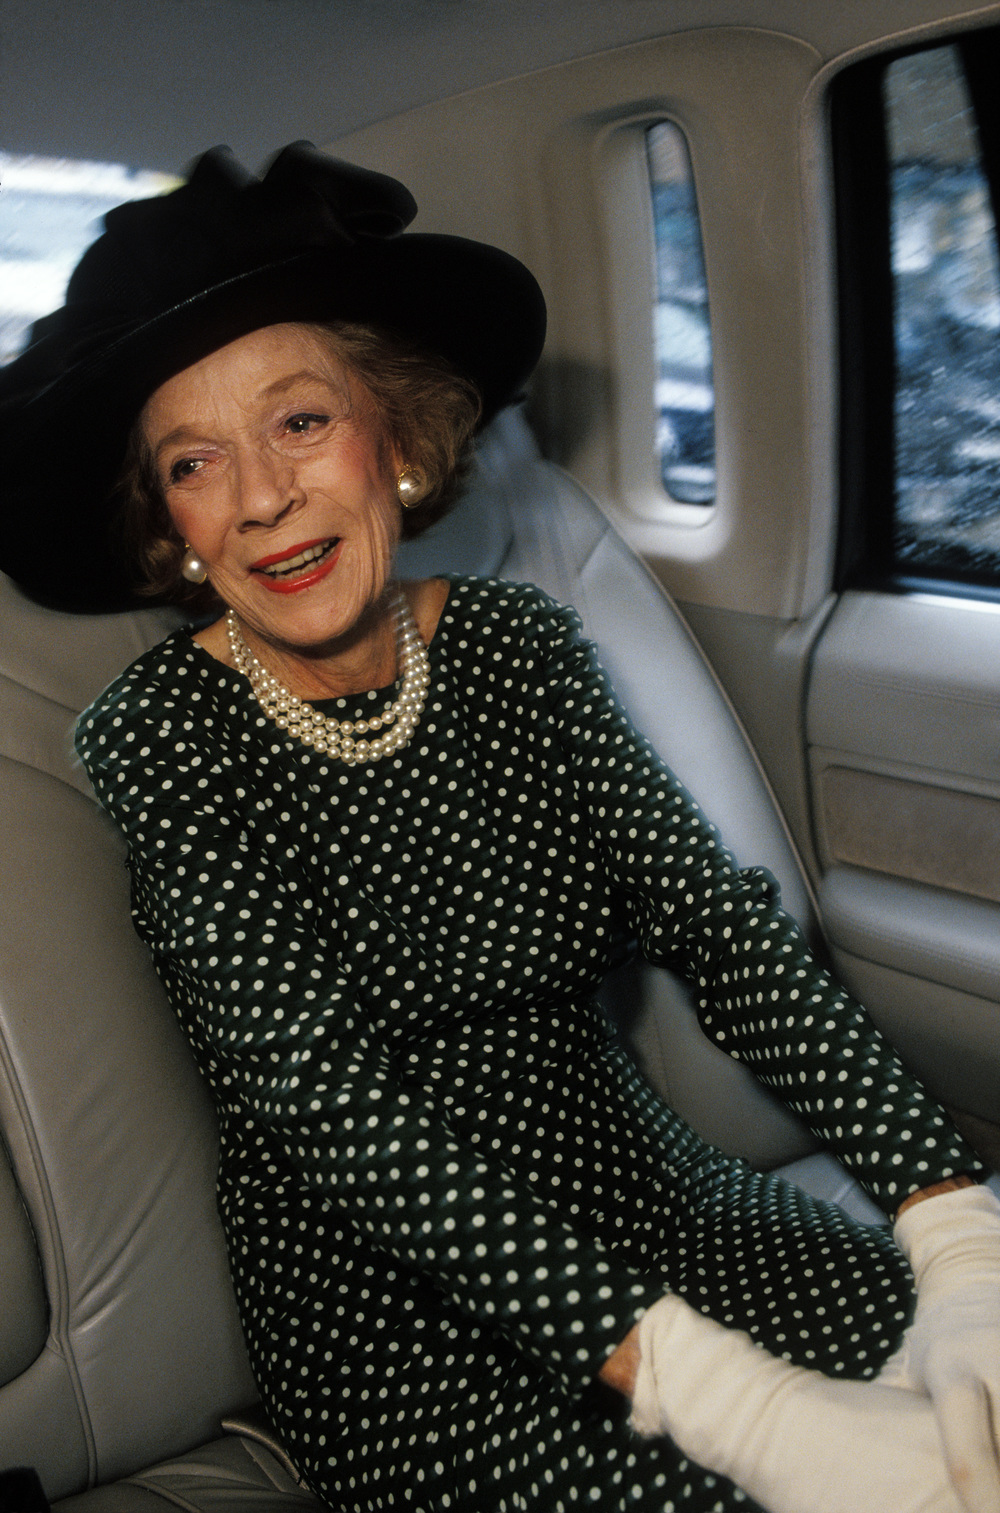 Brooke Astor: White gloves up to her elbows. © Mark Peterson/ReduxPictures for the New York Times Magazine